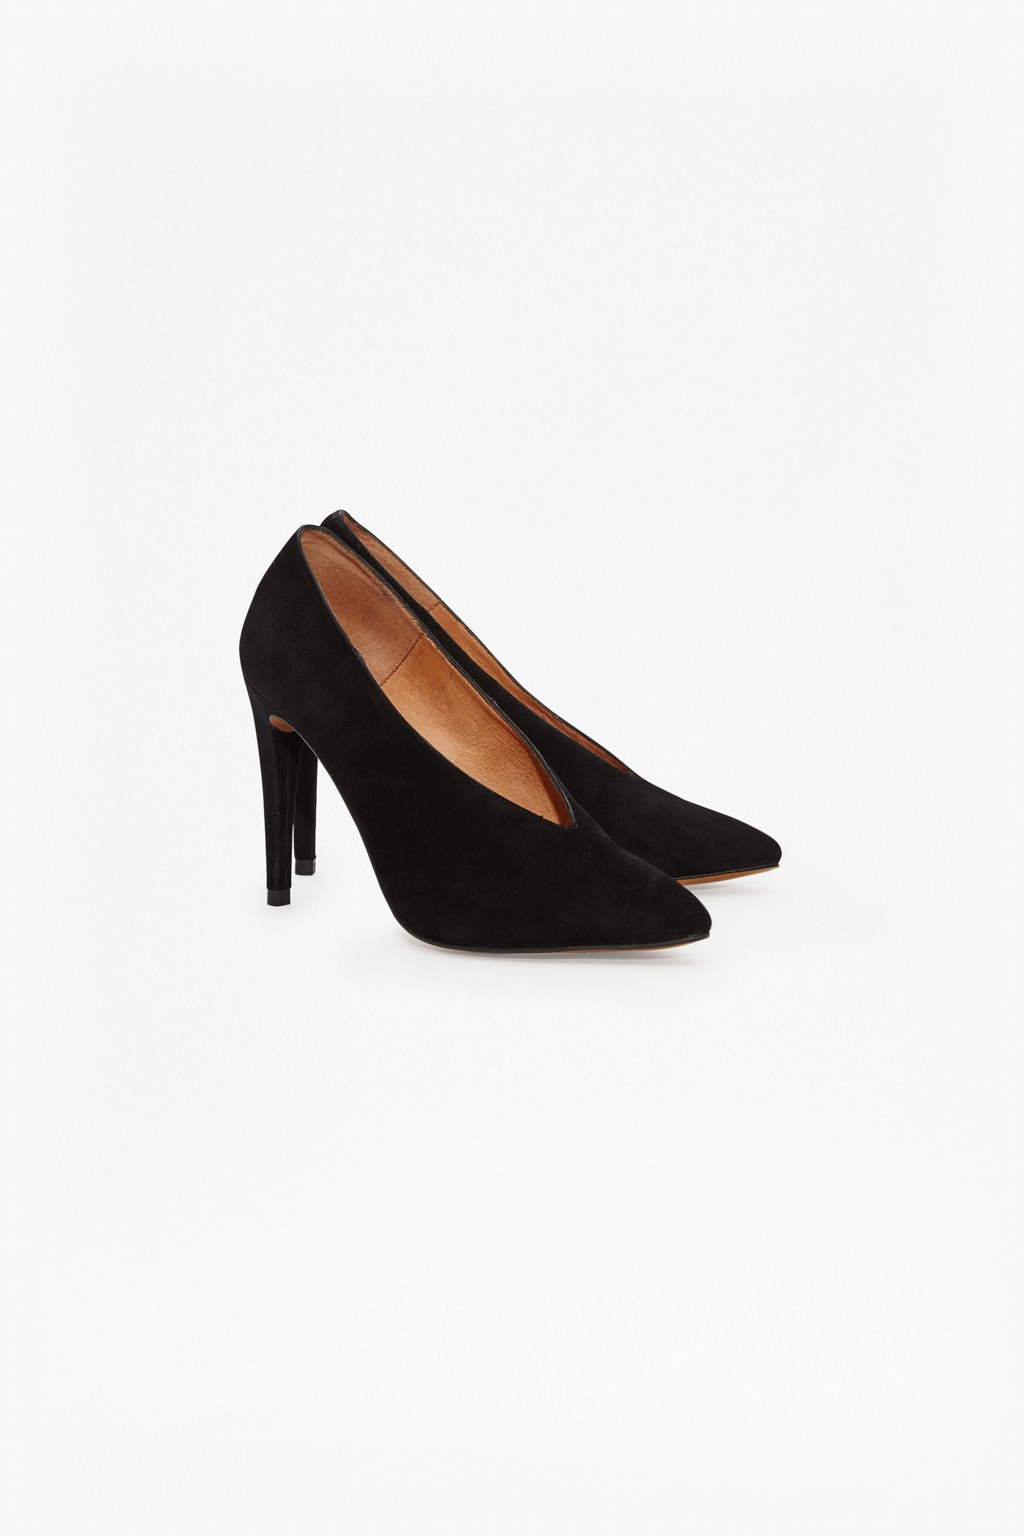 be5409fbe7d4 Arianna High Vamp Court Shoe. loading images... loading images.